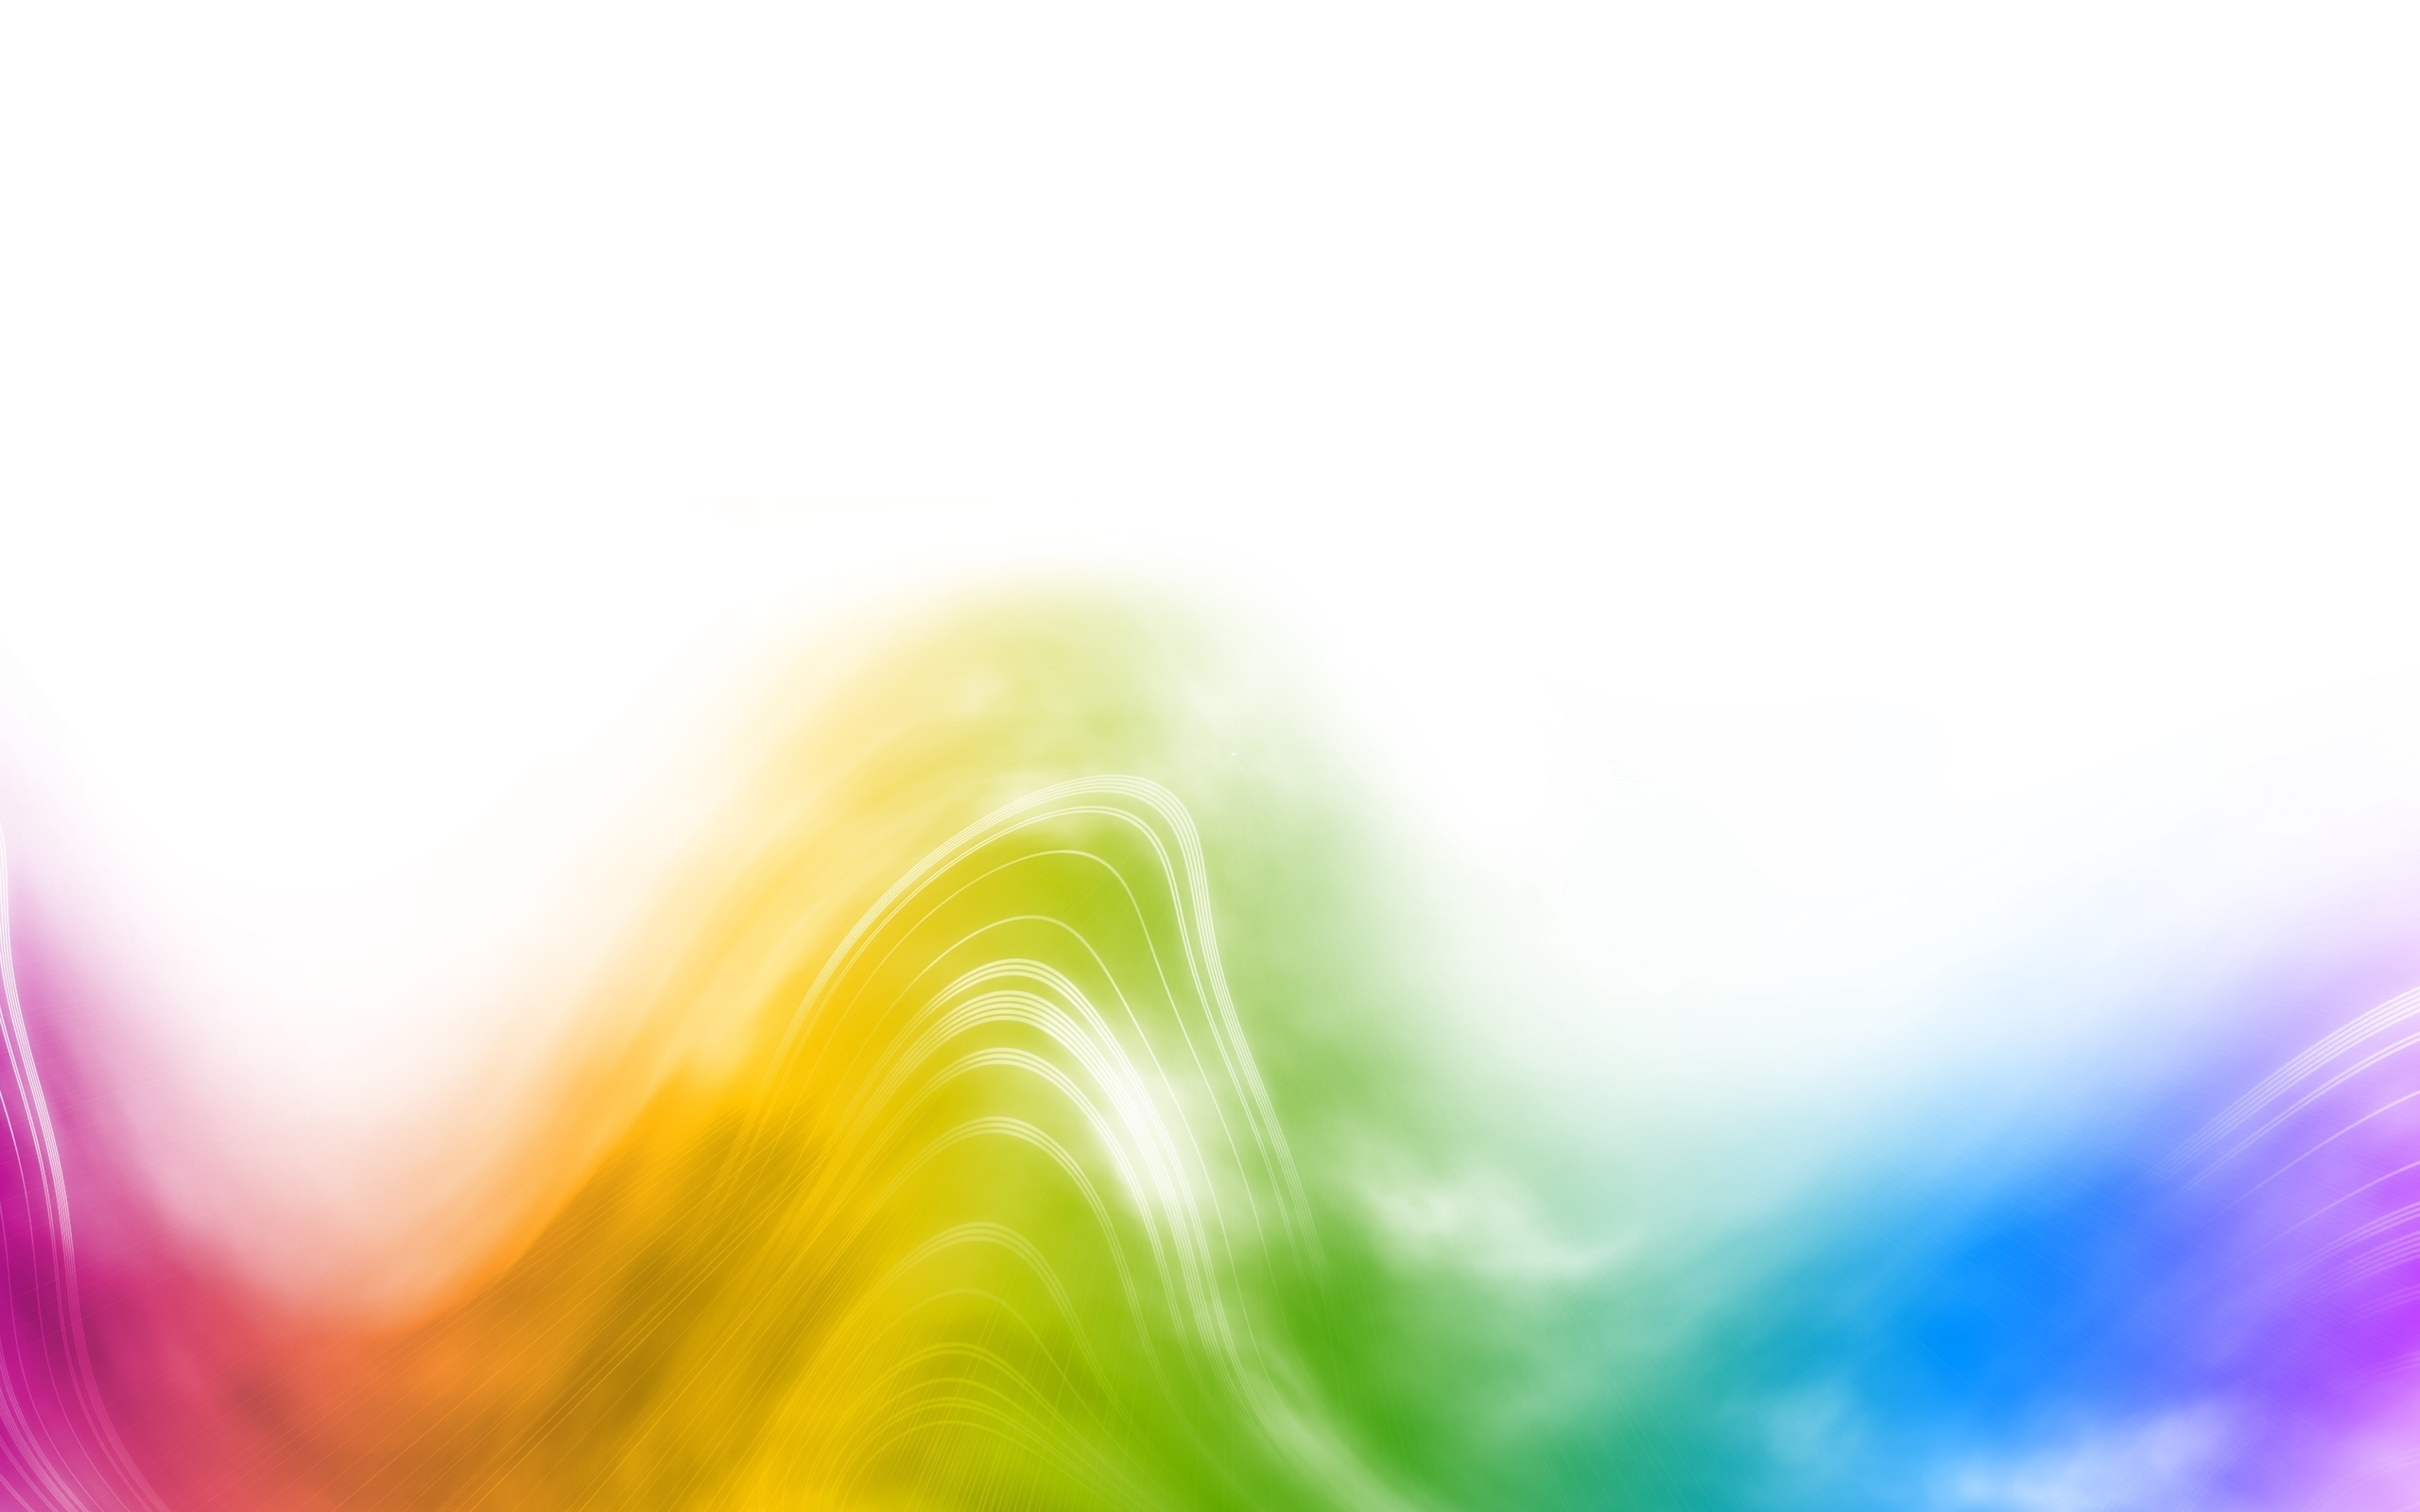 Colorful abstract wallpaper 46035 2560x1600 px for Colourful wallpaper for walls